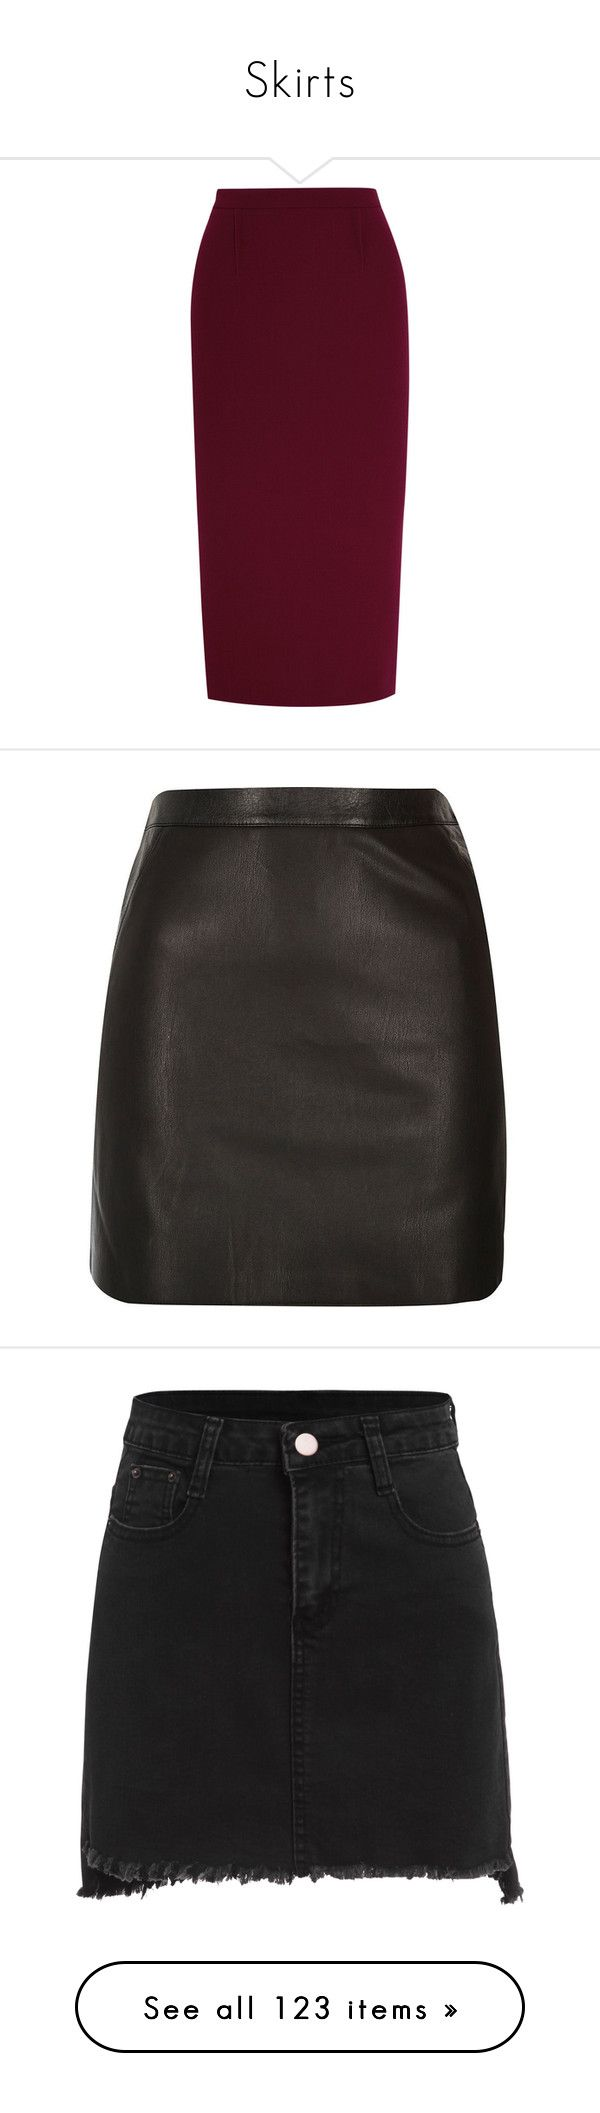 """""""Skirts"""" by boiteasecrets ❤ liked on Polyvore featuring skirts, suits, bottoms, pencil skirt, saias, foldover skirts, zipper skirt, zipper pencil skirt, purple pencil skirt and roland mouret"""